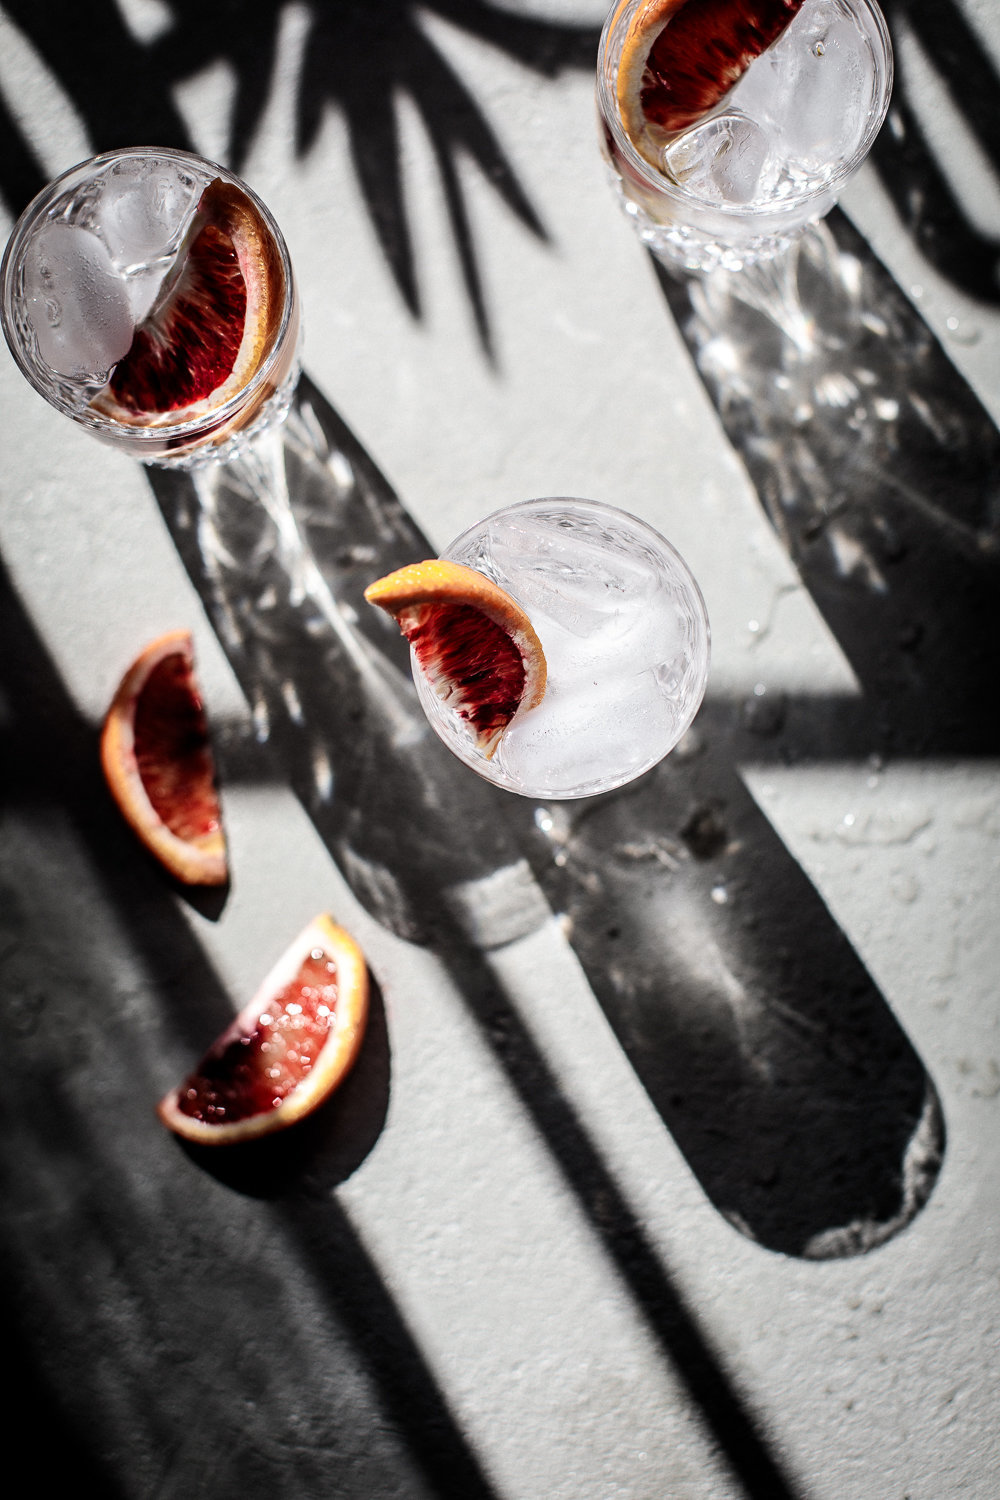 Blood Orange Soda - Anisa Sabet - The Macadames - Food Travel Lifestyle Photographer-171